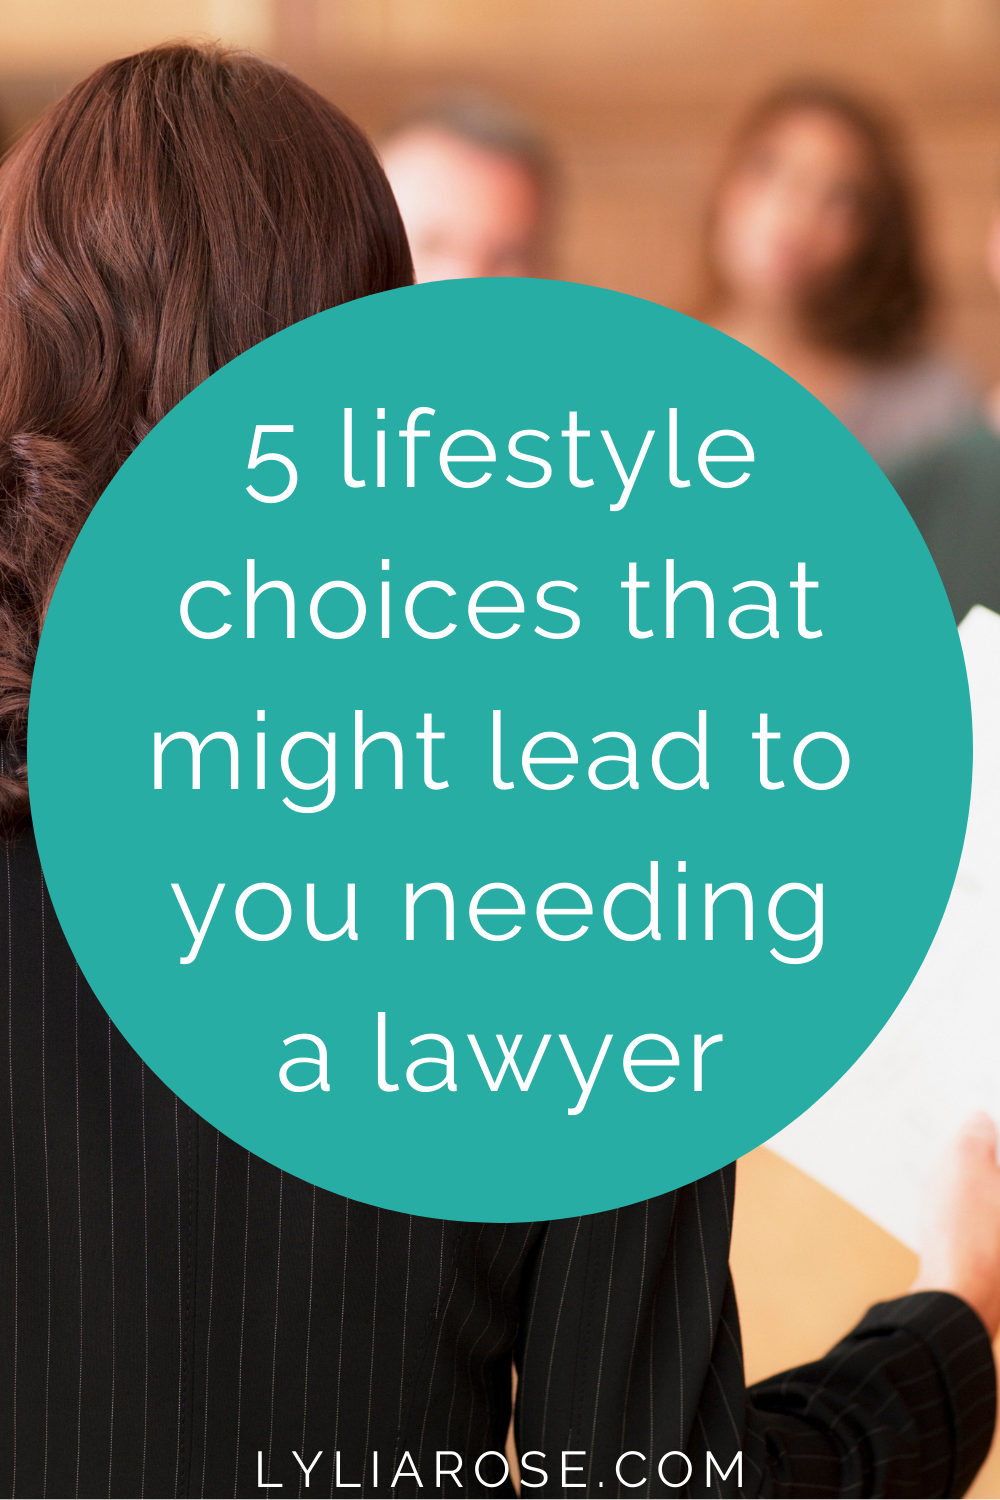 5 lifestyle choices that might lead to you needing a lawyer